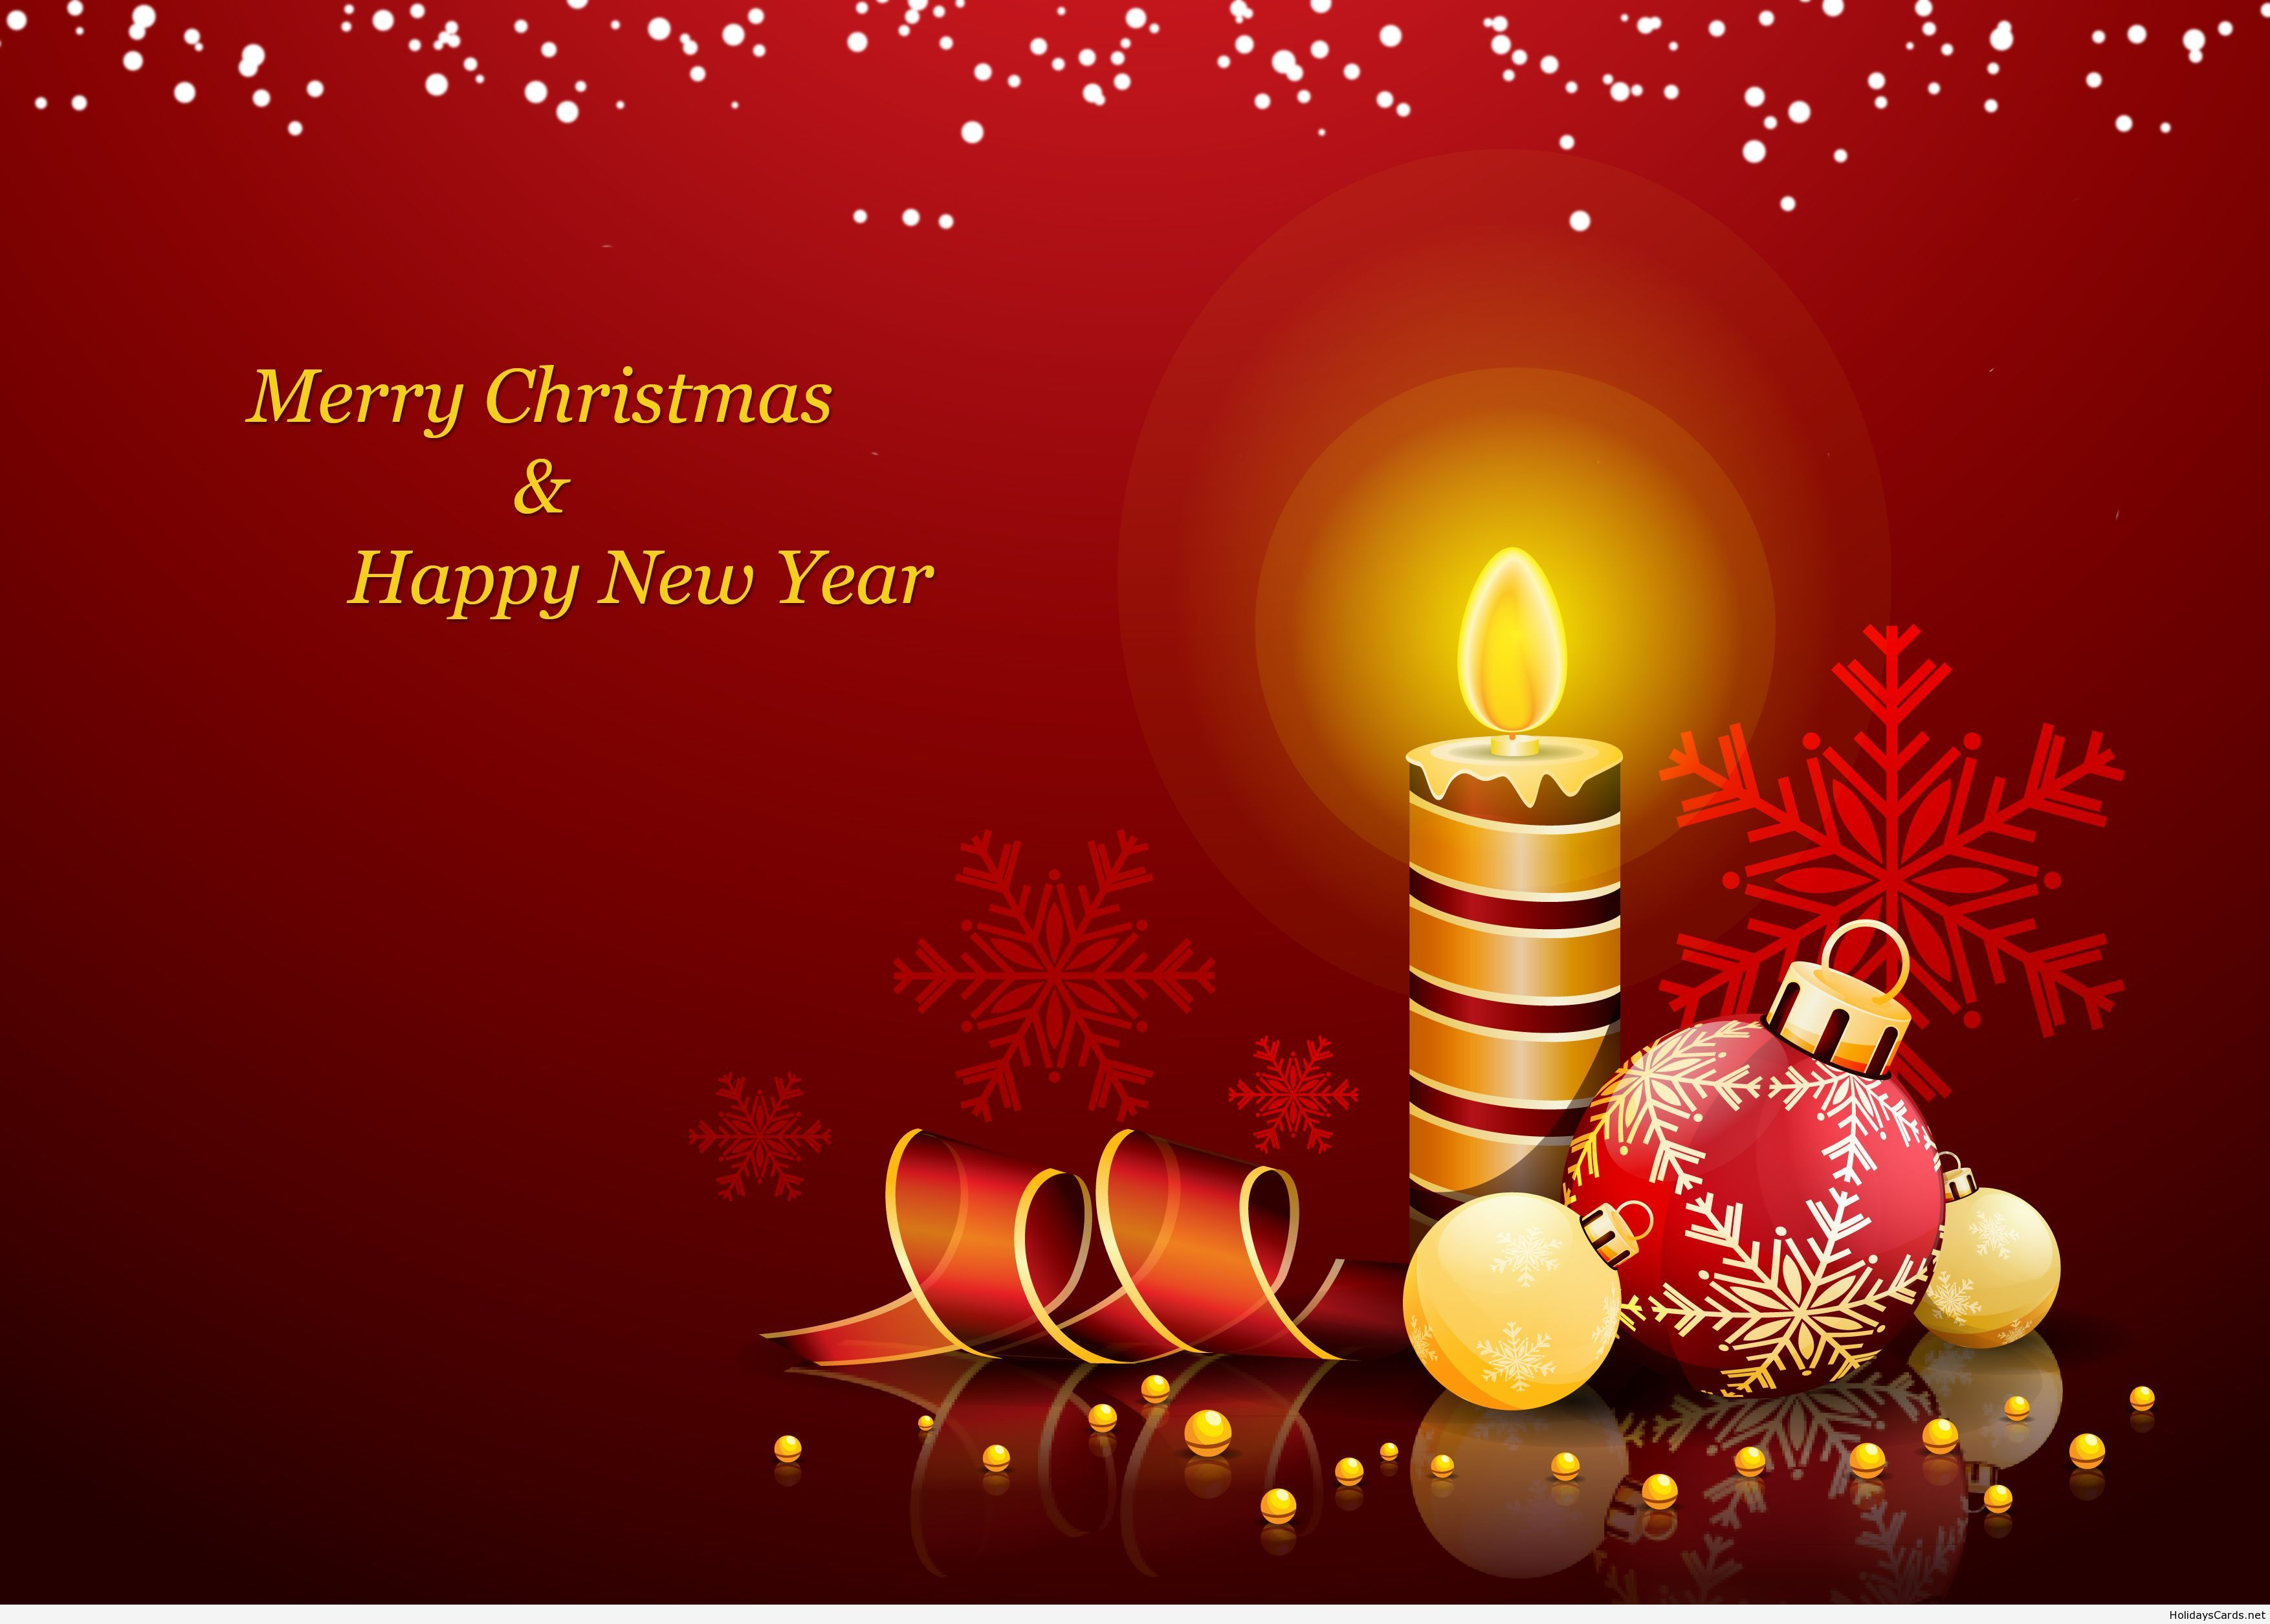 merry christmas and happy new year wallpaper | happy new year